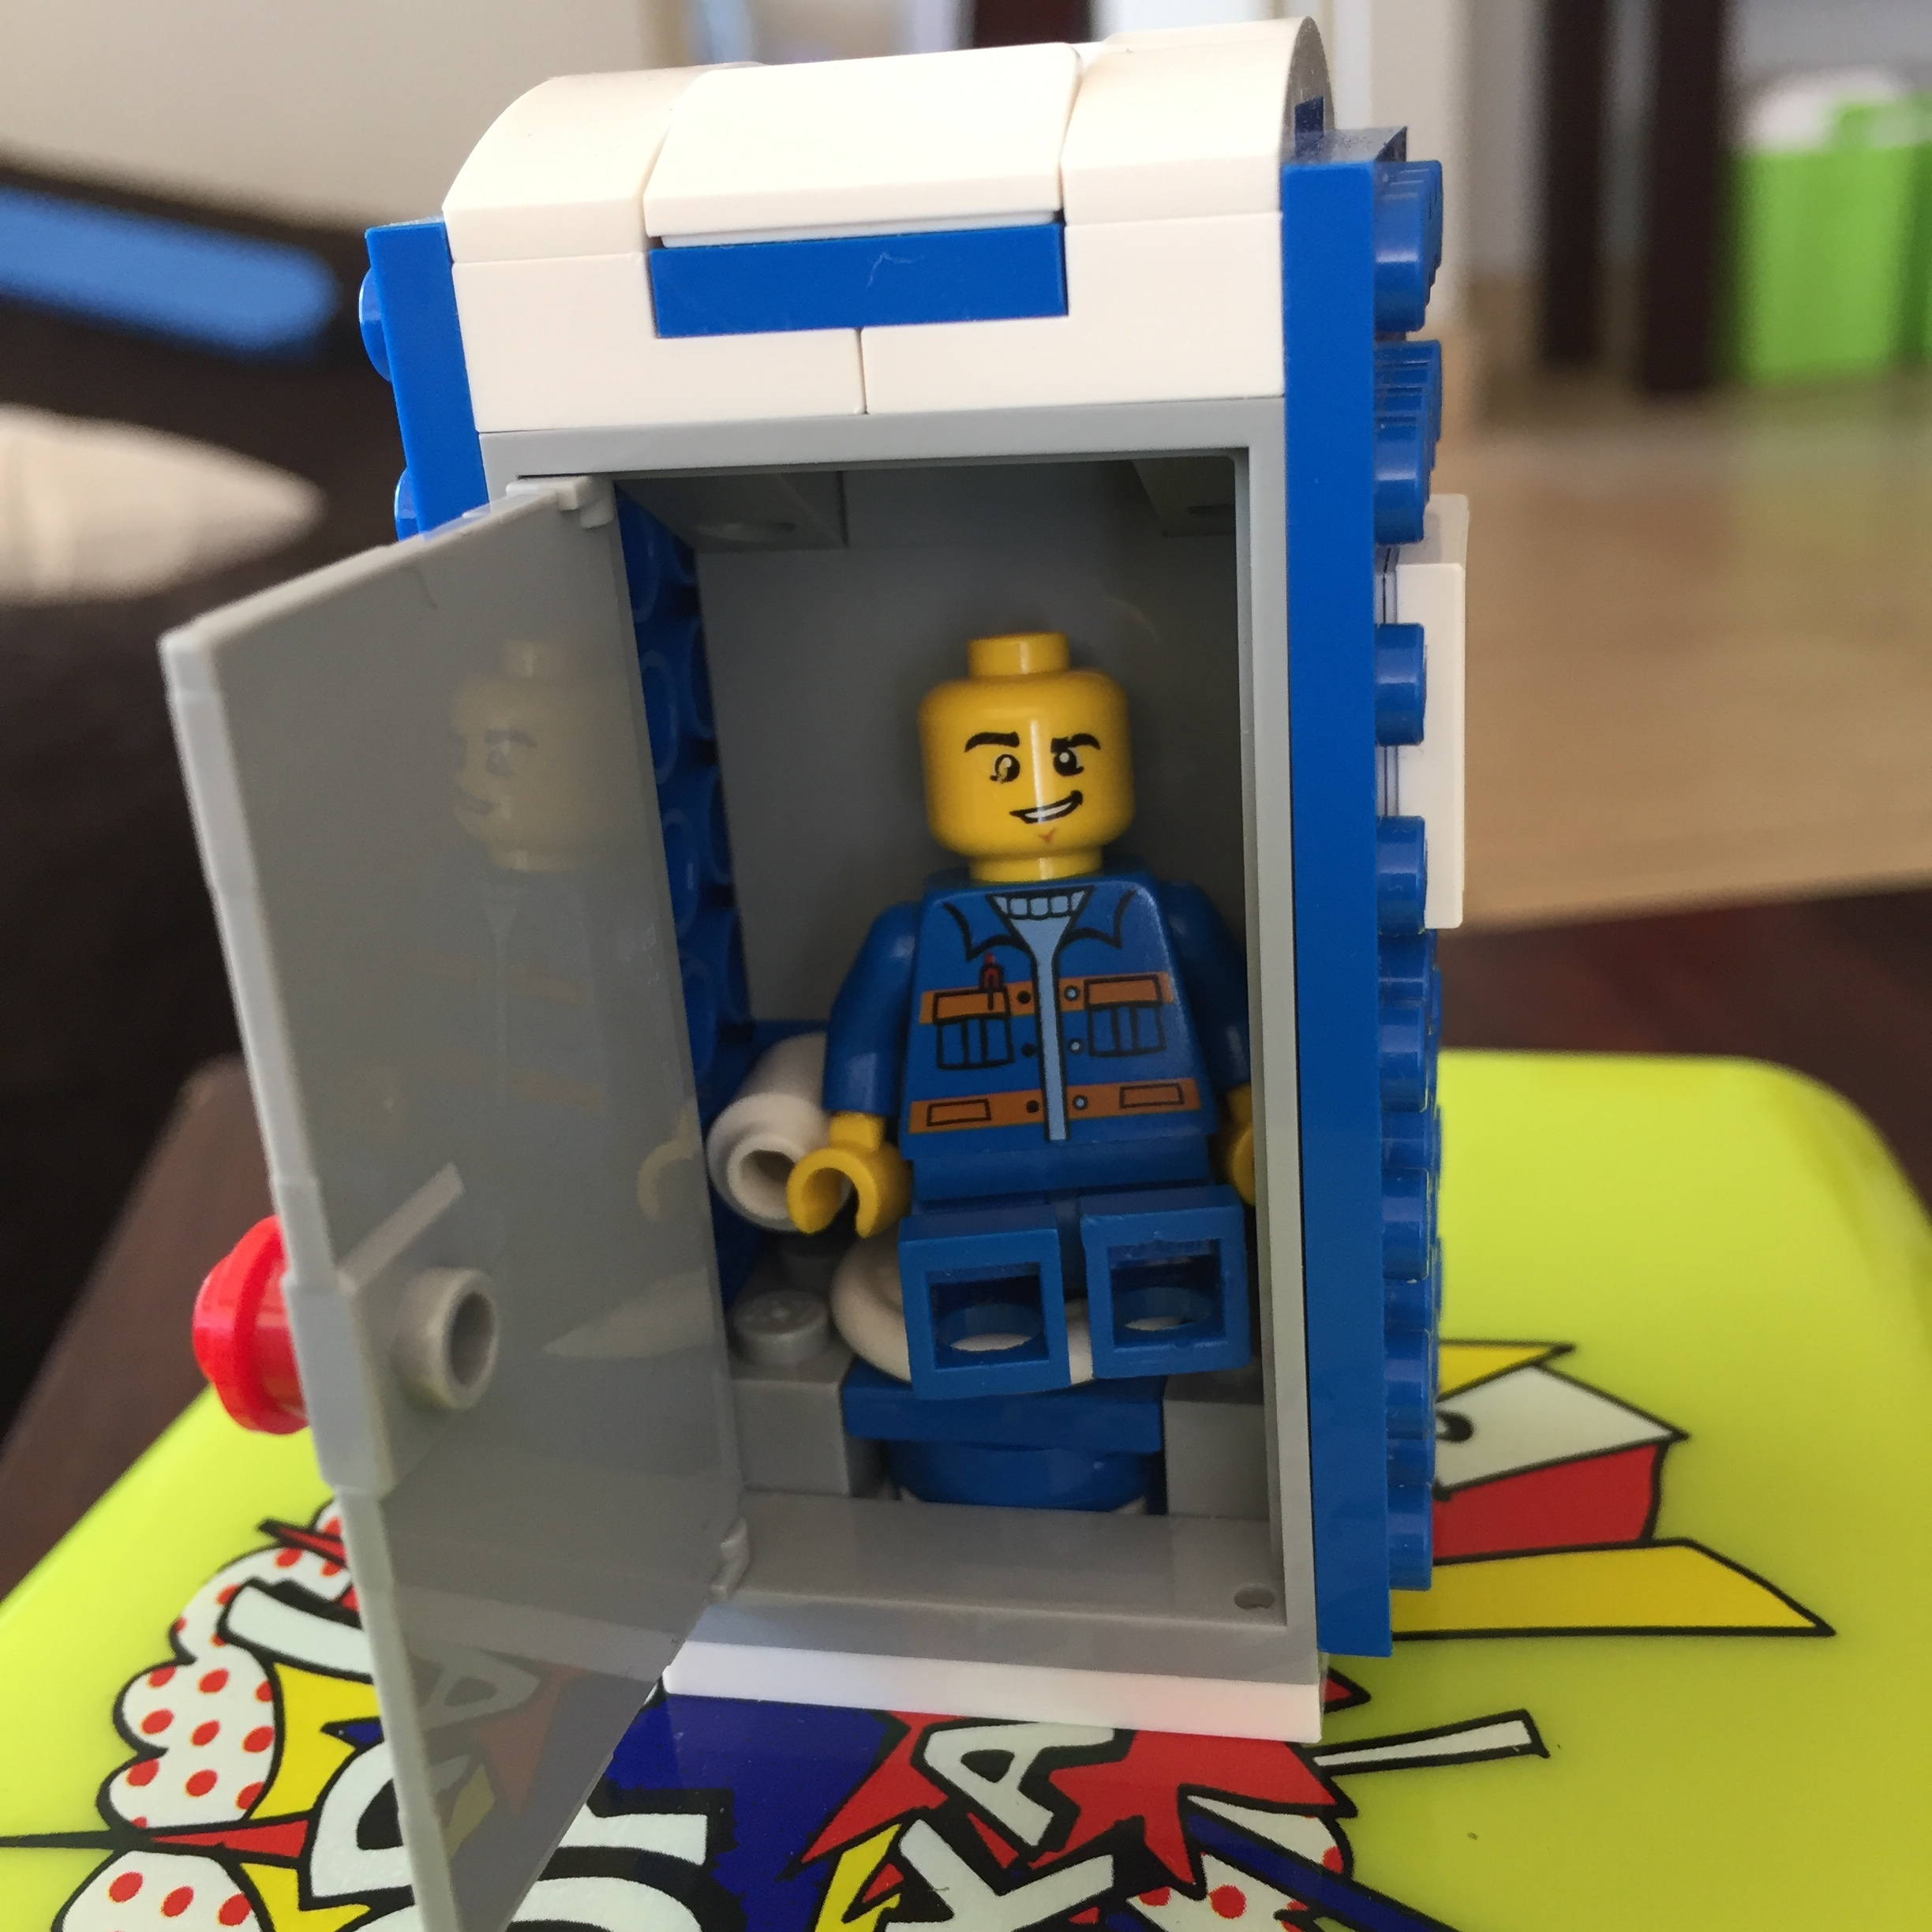 Again, the Lego port-o-let.